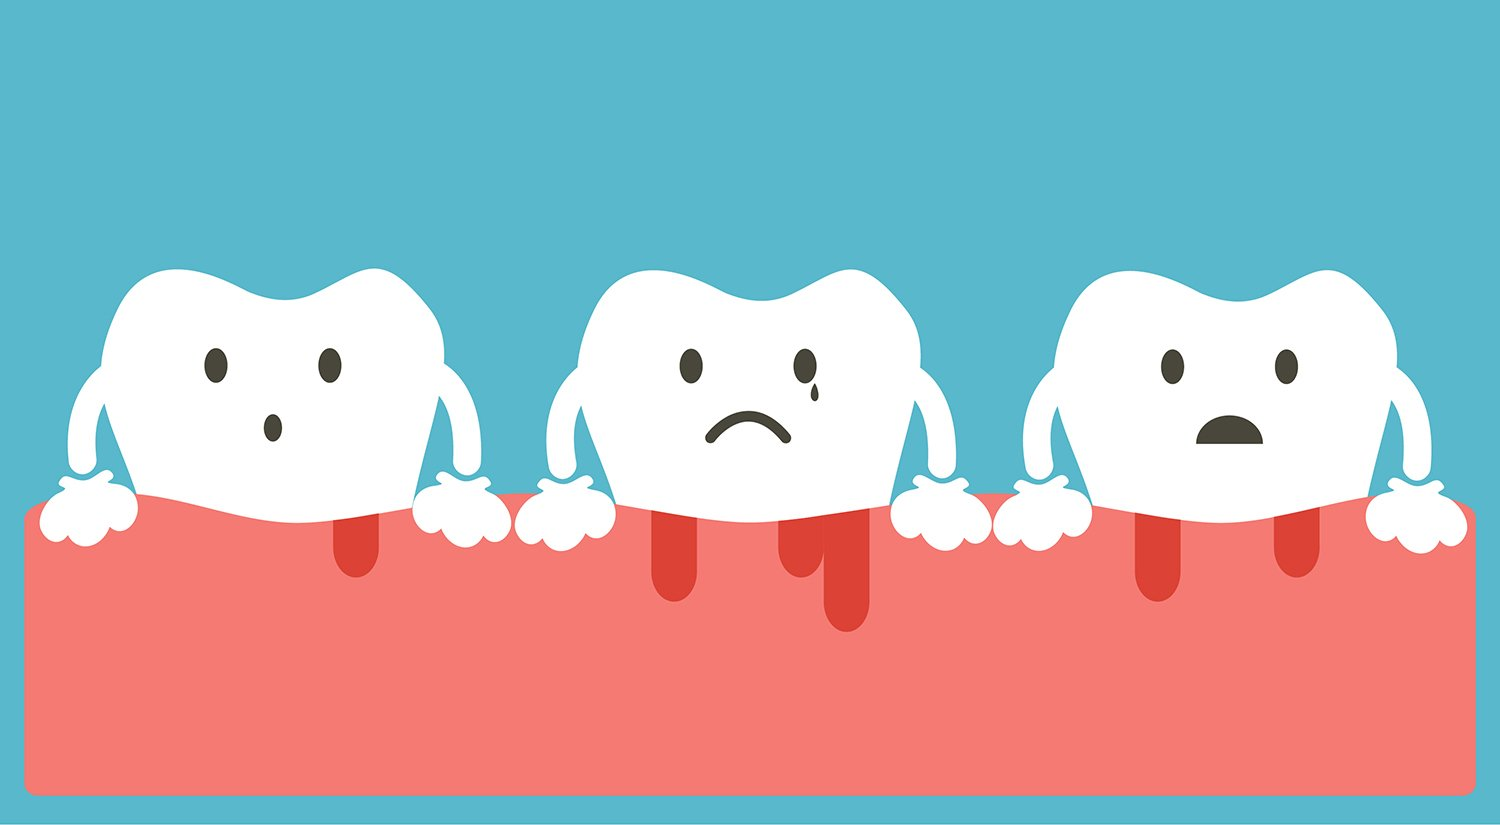 Gum Disease: Stages, Prevention, and Treatment - Ask the Dentist